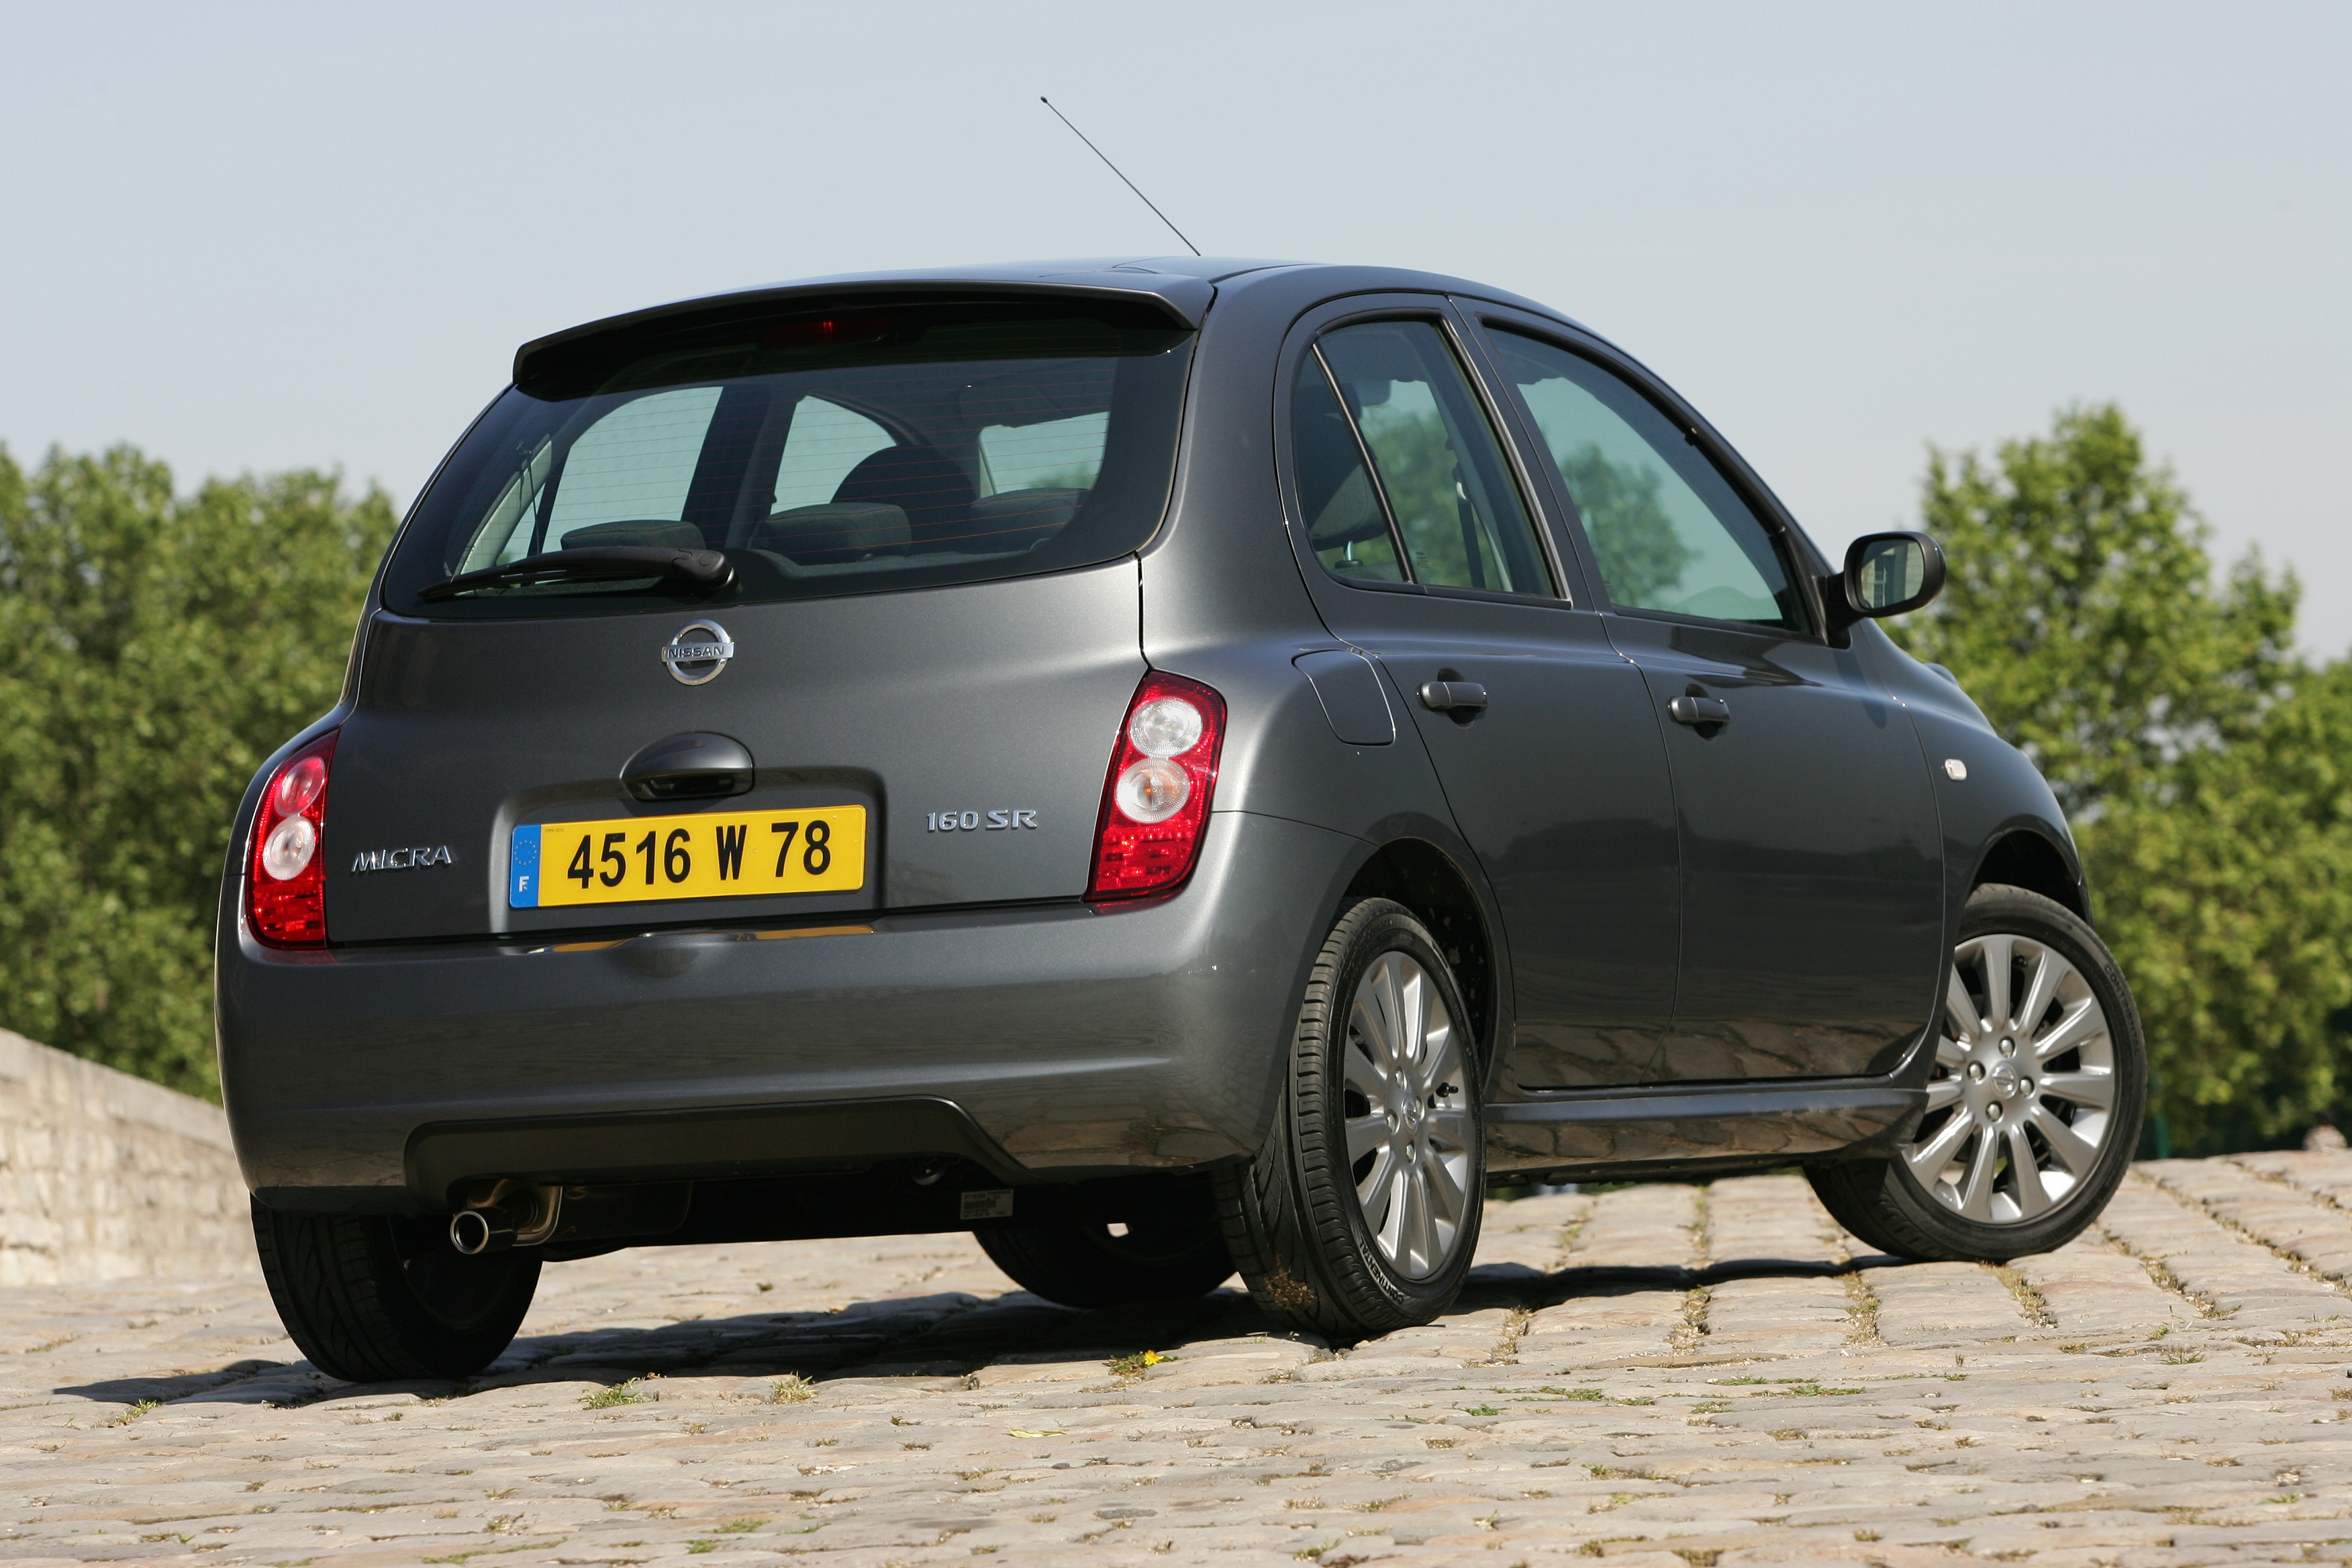 nissan micra 160 sr photos and comments. Black Bedroom Furniture Sets. Home Design Ideas